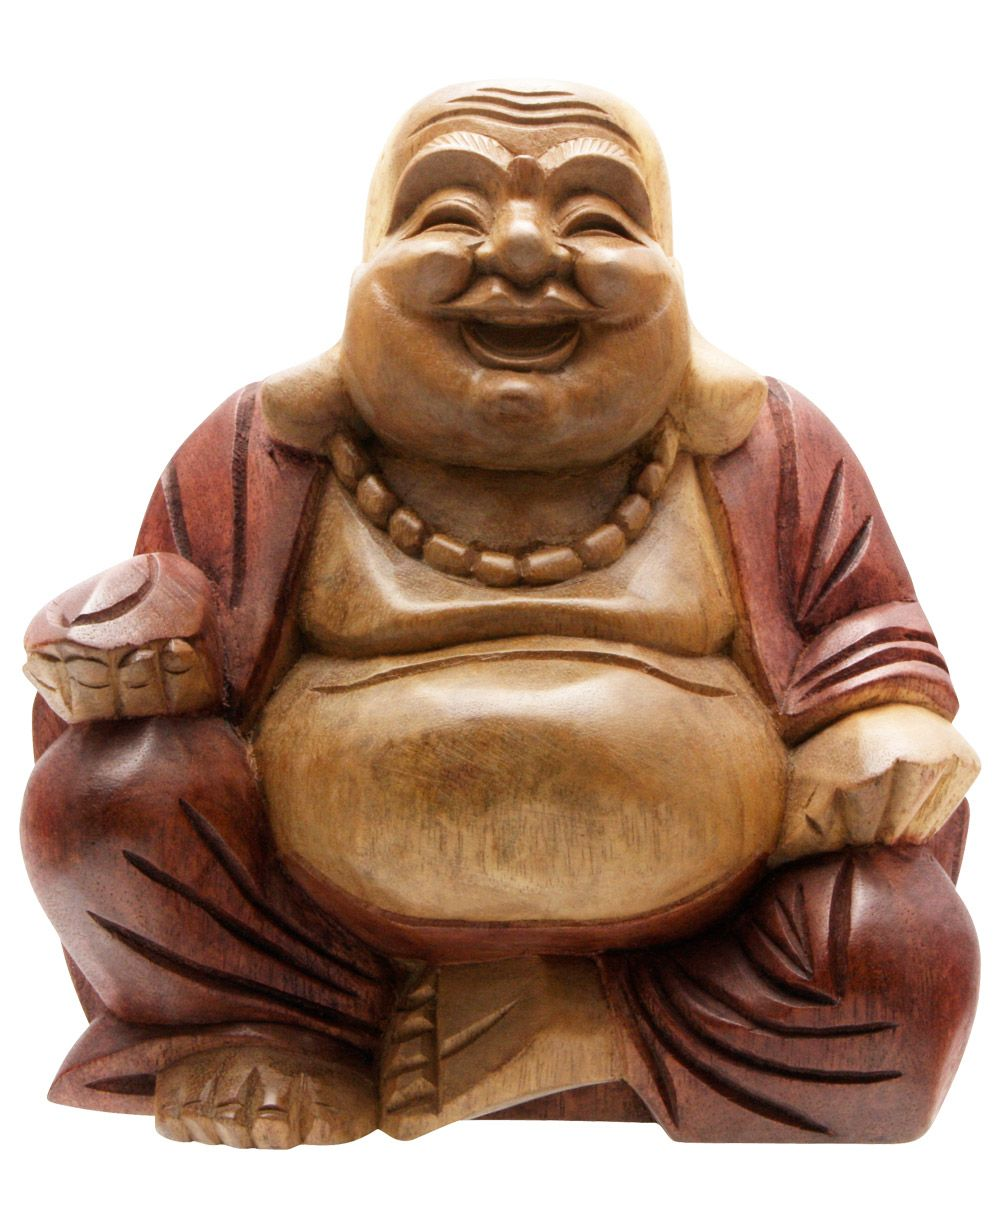 Hand Carved Two-Toned Happy Buddha Statue - Ethnic Spiritual Buddha Decor - HipBazaar.com #buddhadecor